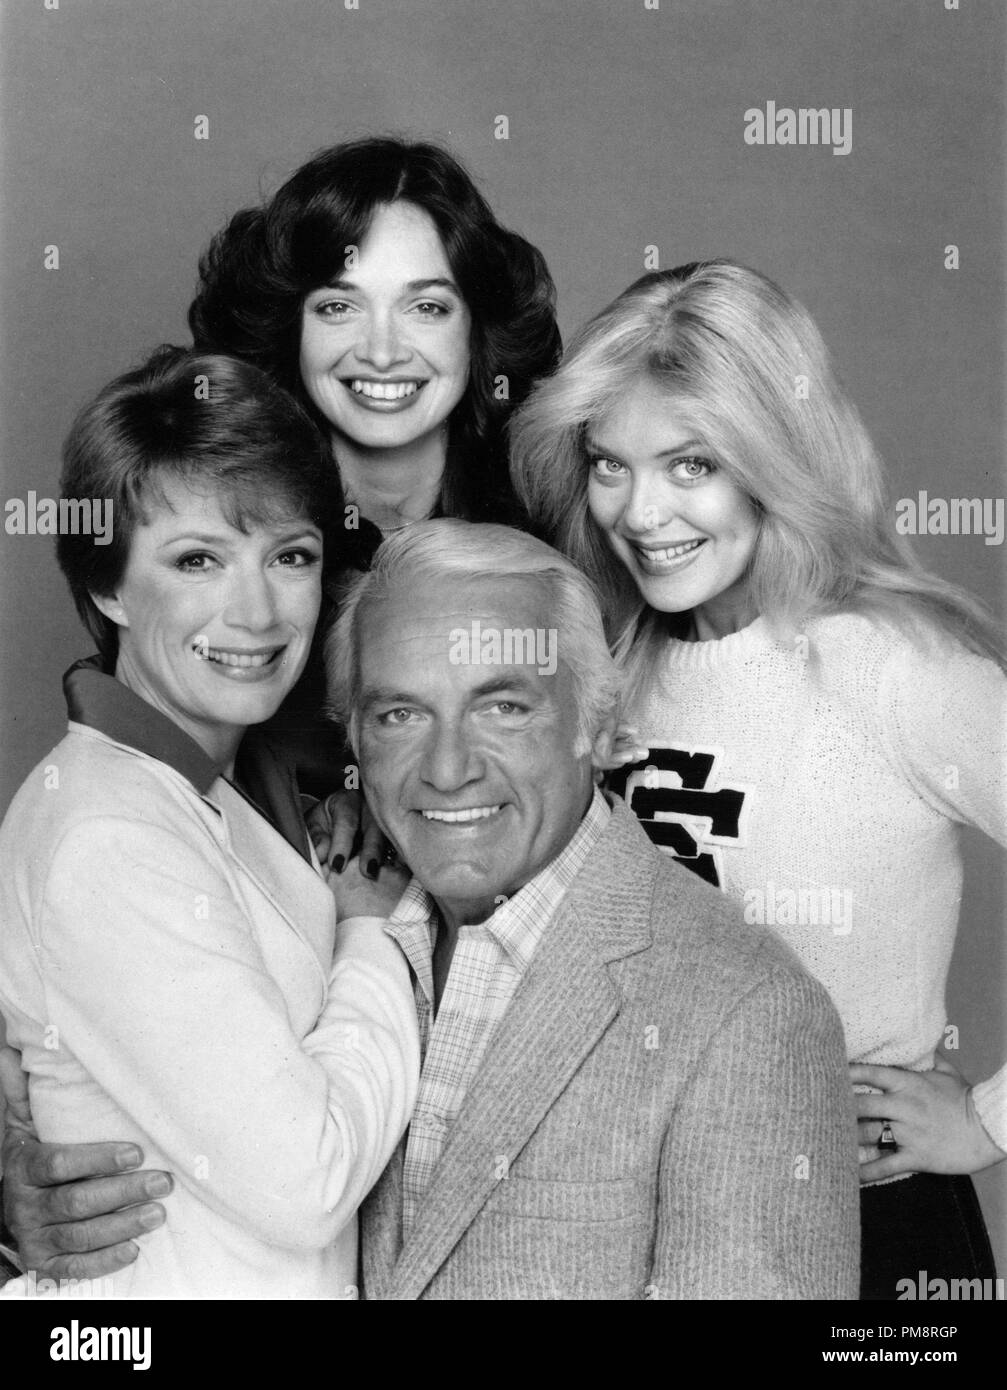 Studio Publicity Still from 'Too Close For Comfort' Nancy Dussault,Ted Knight,Deborah Van Valkenburgh, Lydia Cornell 1980   All Rights Reserved   File Reference # 31715024THA  For Editorial Use Only - Stock Image